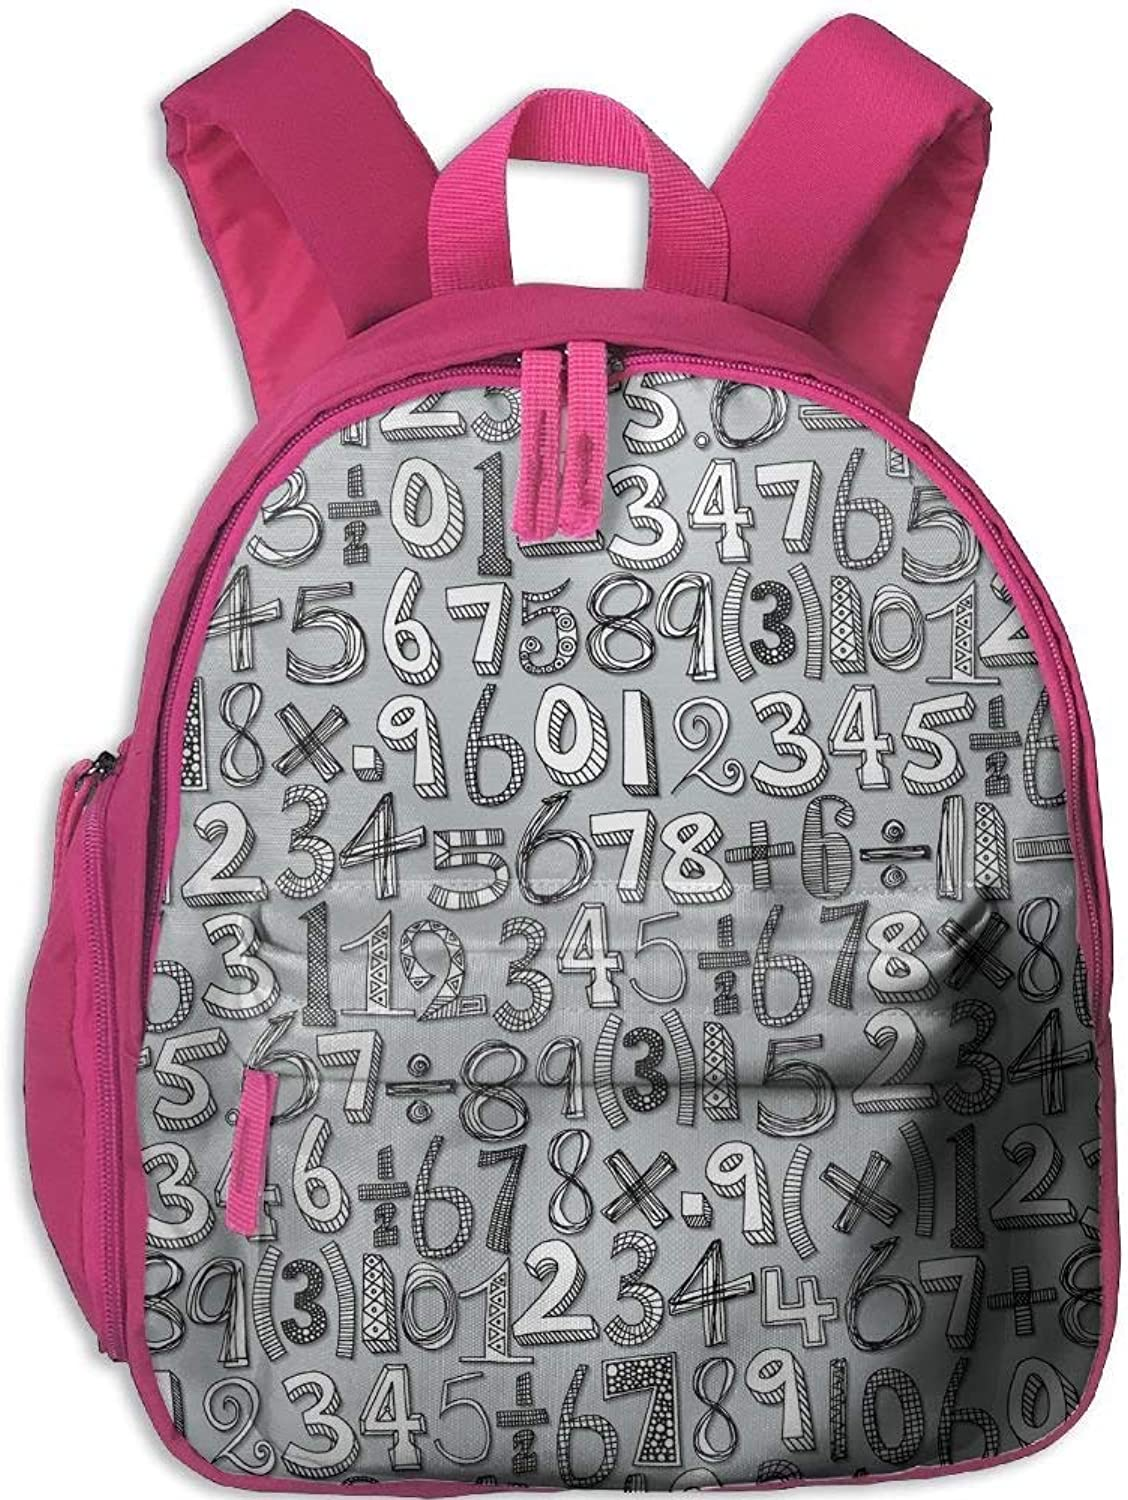 Backpack, School Backpack for Boys Girls Girls Girls Cute Fashion Mini Toddler Canvas Backpack, Number B07LFZ1553  Moderne und stilvolle Mode e915bf